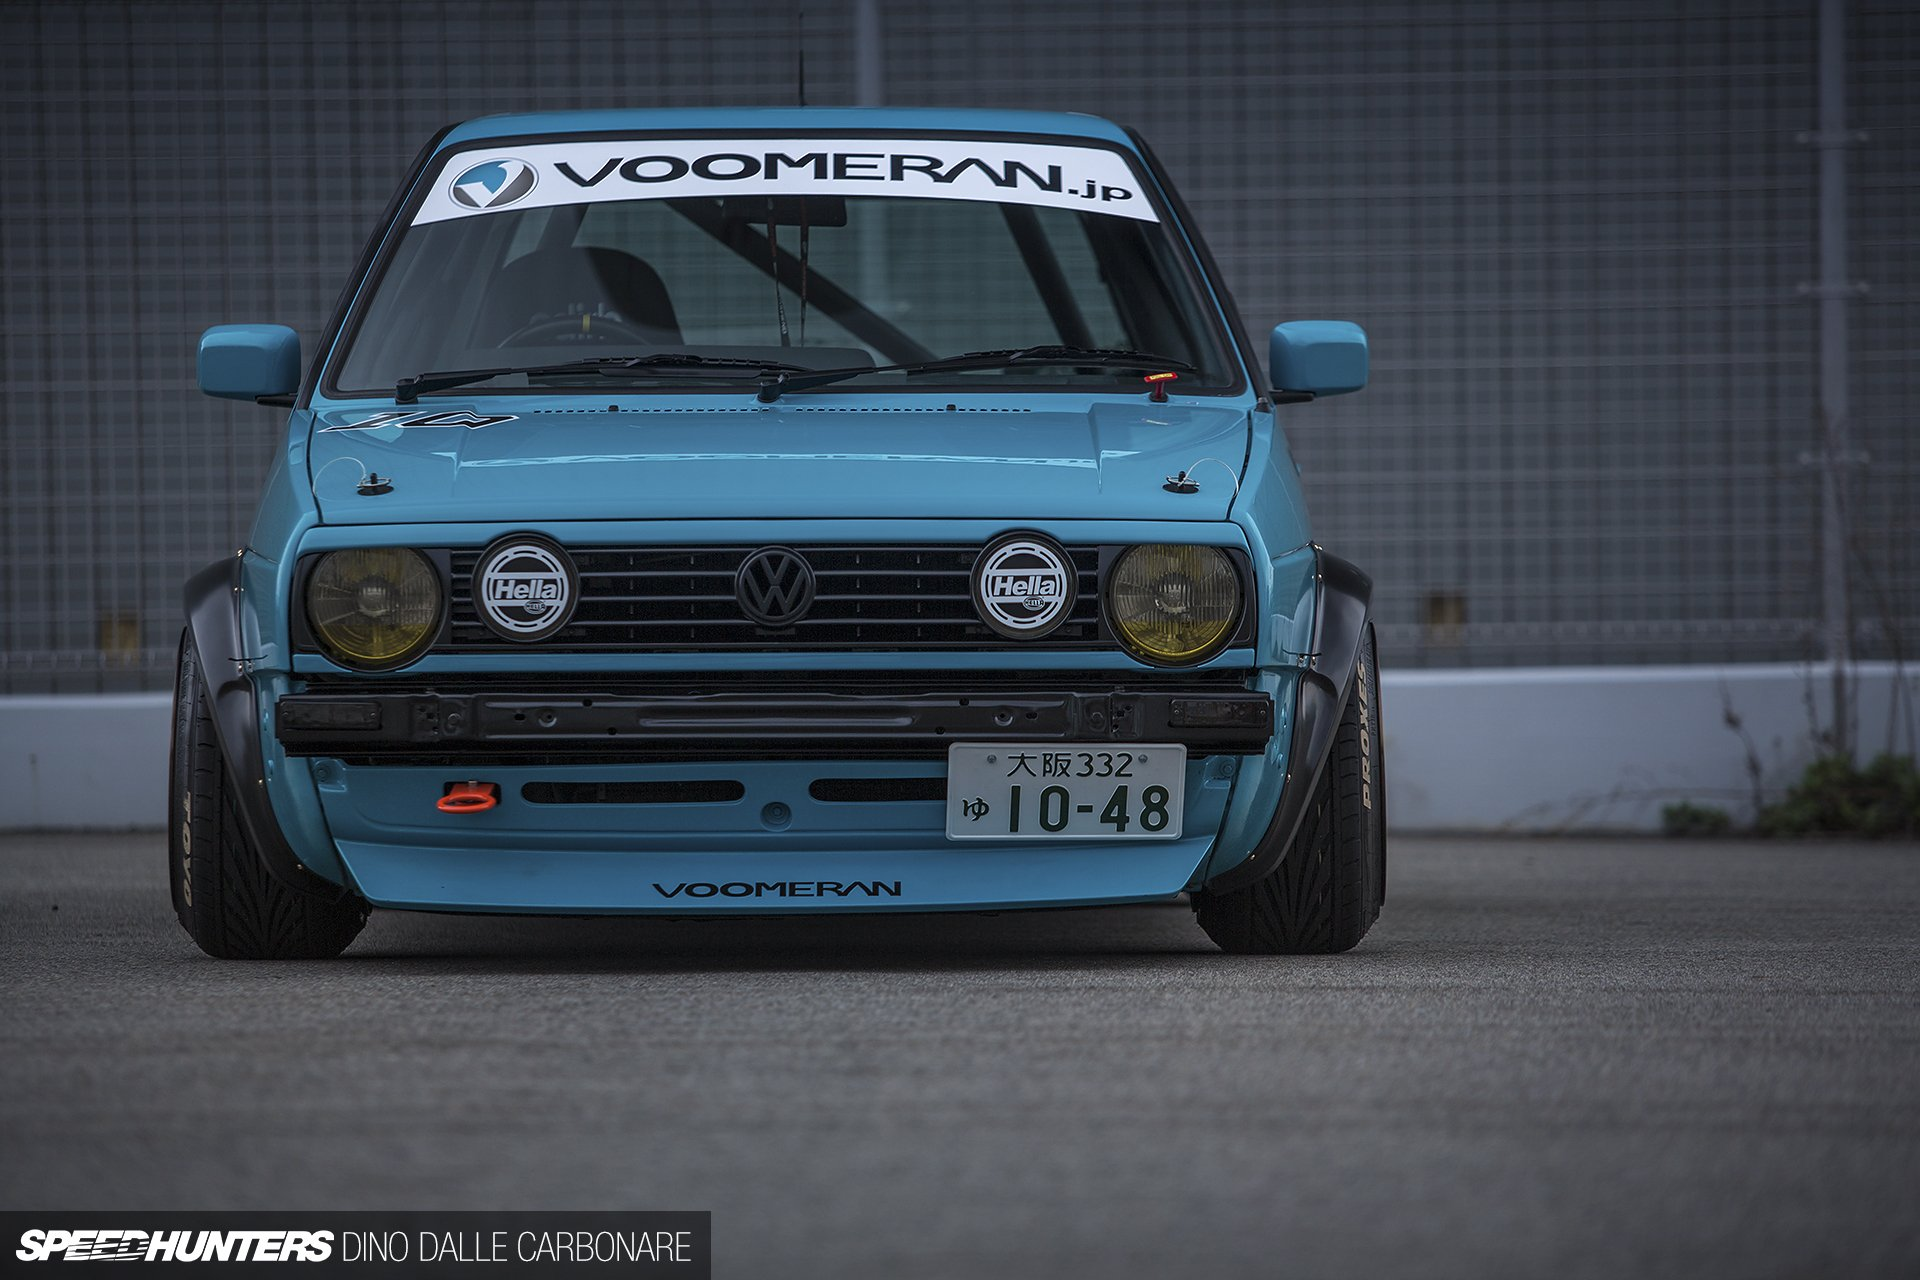 Golf Mk2 Tuning, Hd 1080p, 4k Foto